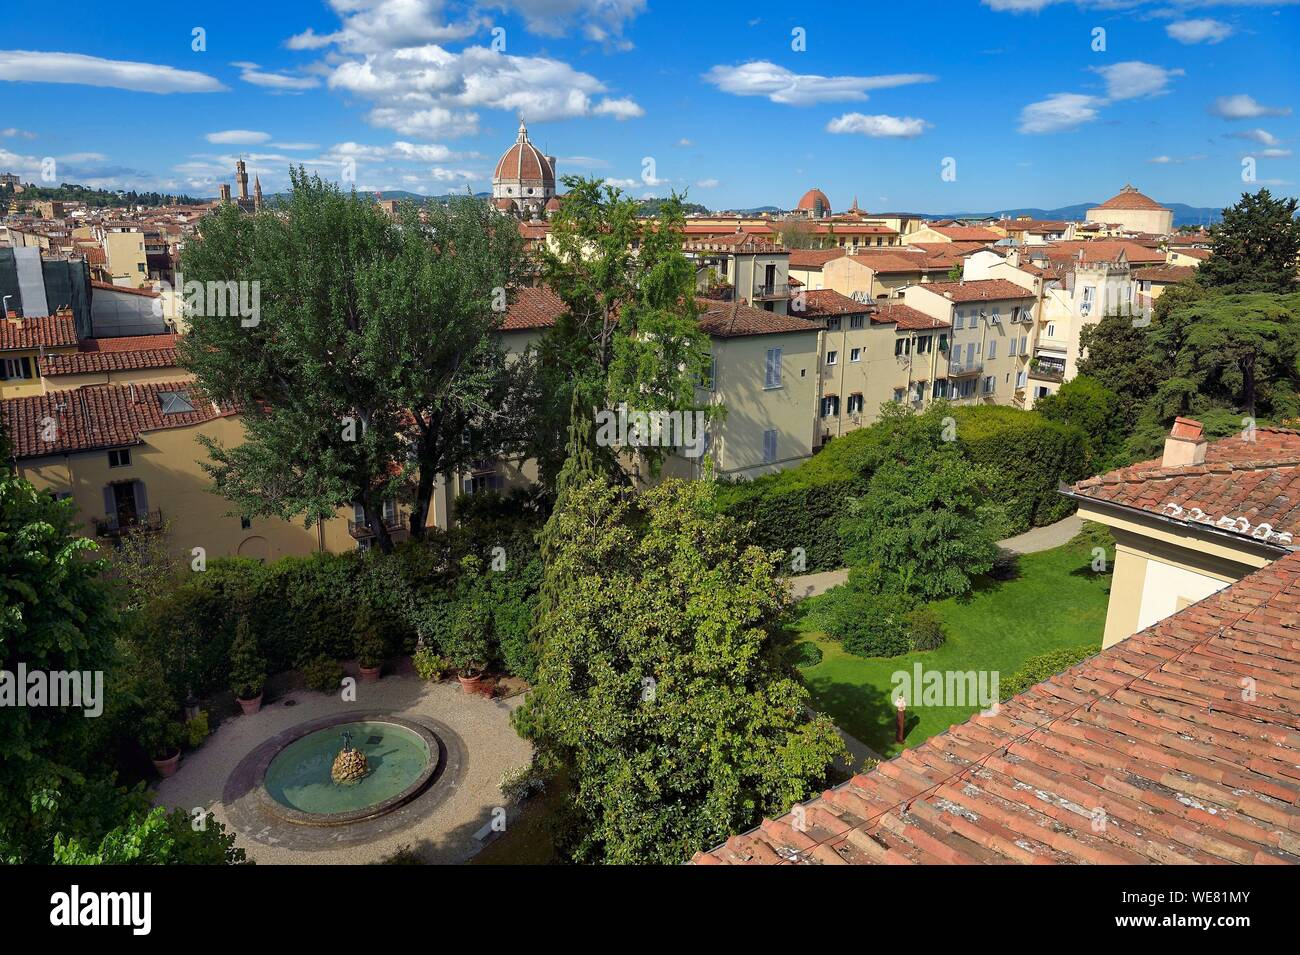 Italy, Tuscany, Florence, listed as World Heritage by UNESCO, view of the historic center of the old town from the Palazzo Della Gherardesca, 5 star palace Four Seasons Hotel Firenze Stock Photo